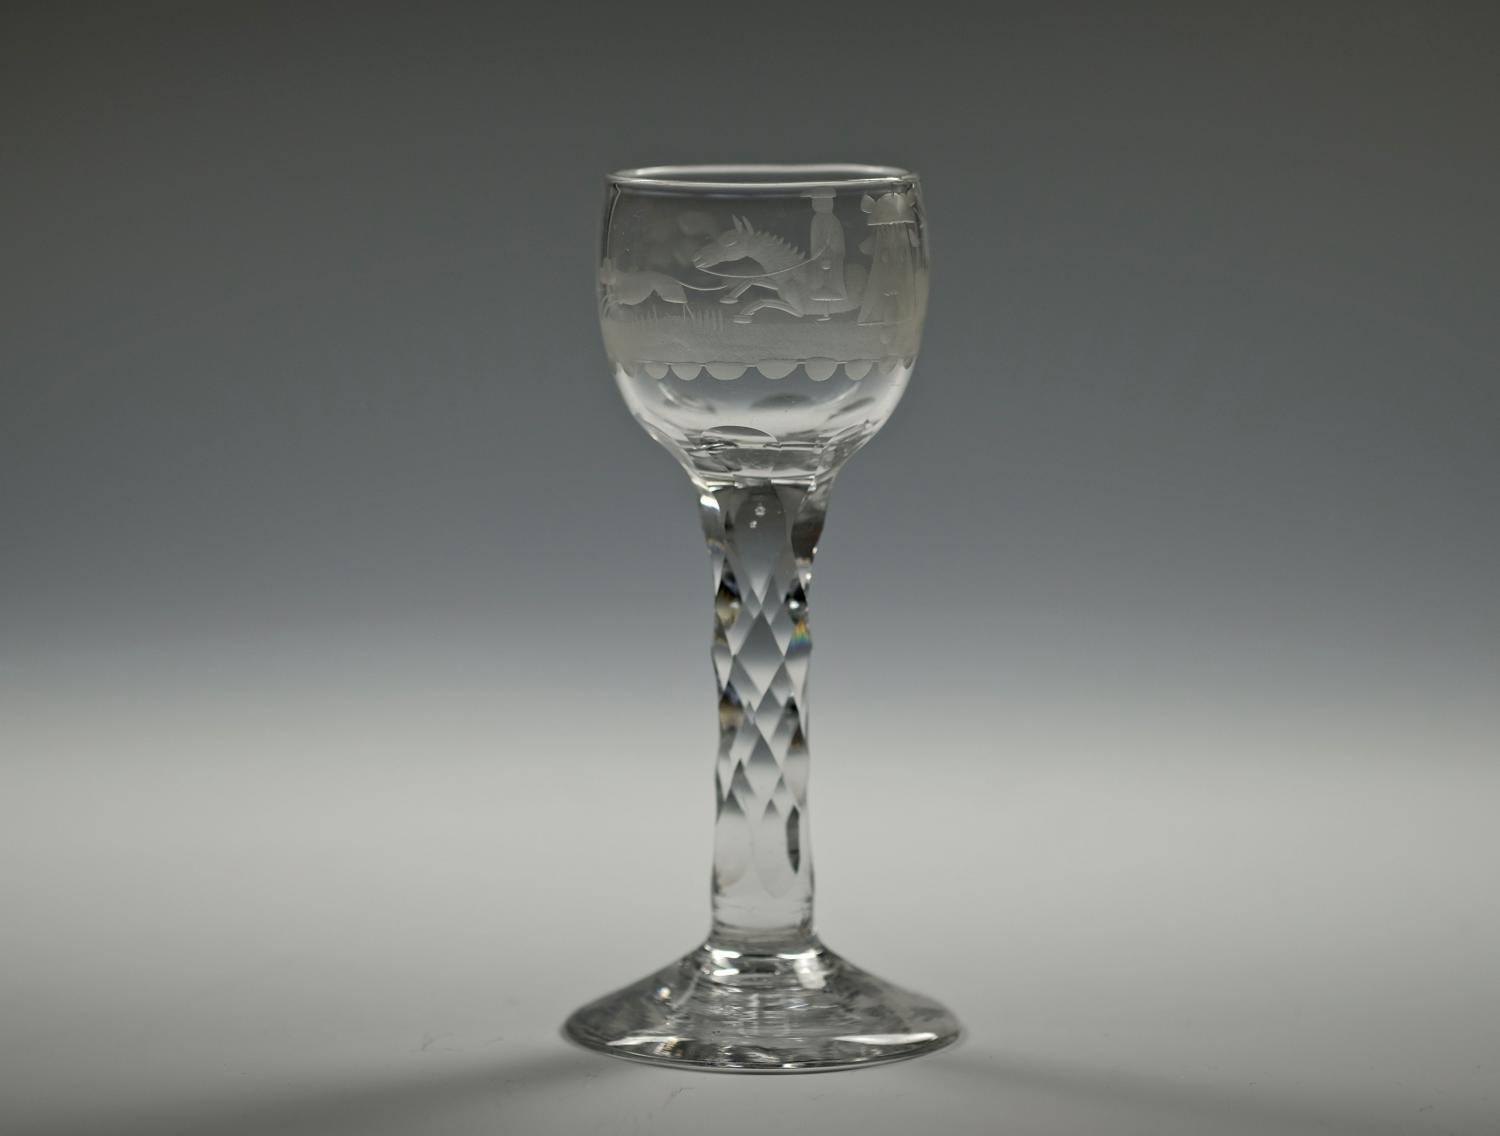 Engraved facet stem wine glass English C1770/80